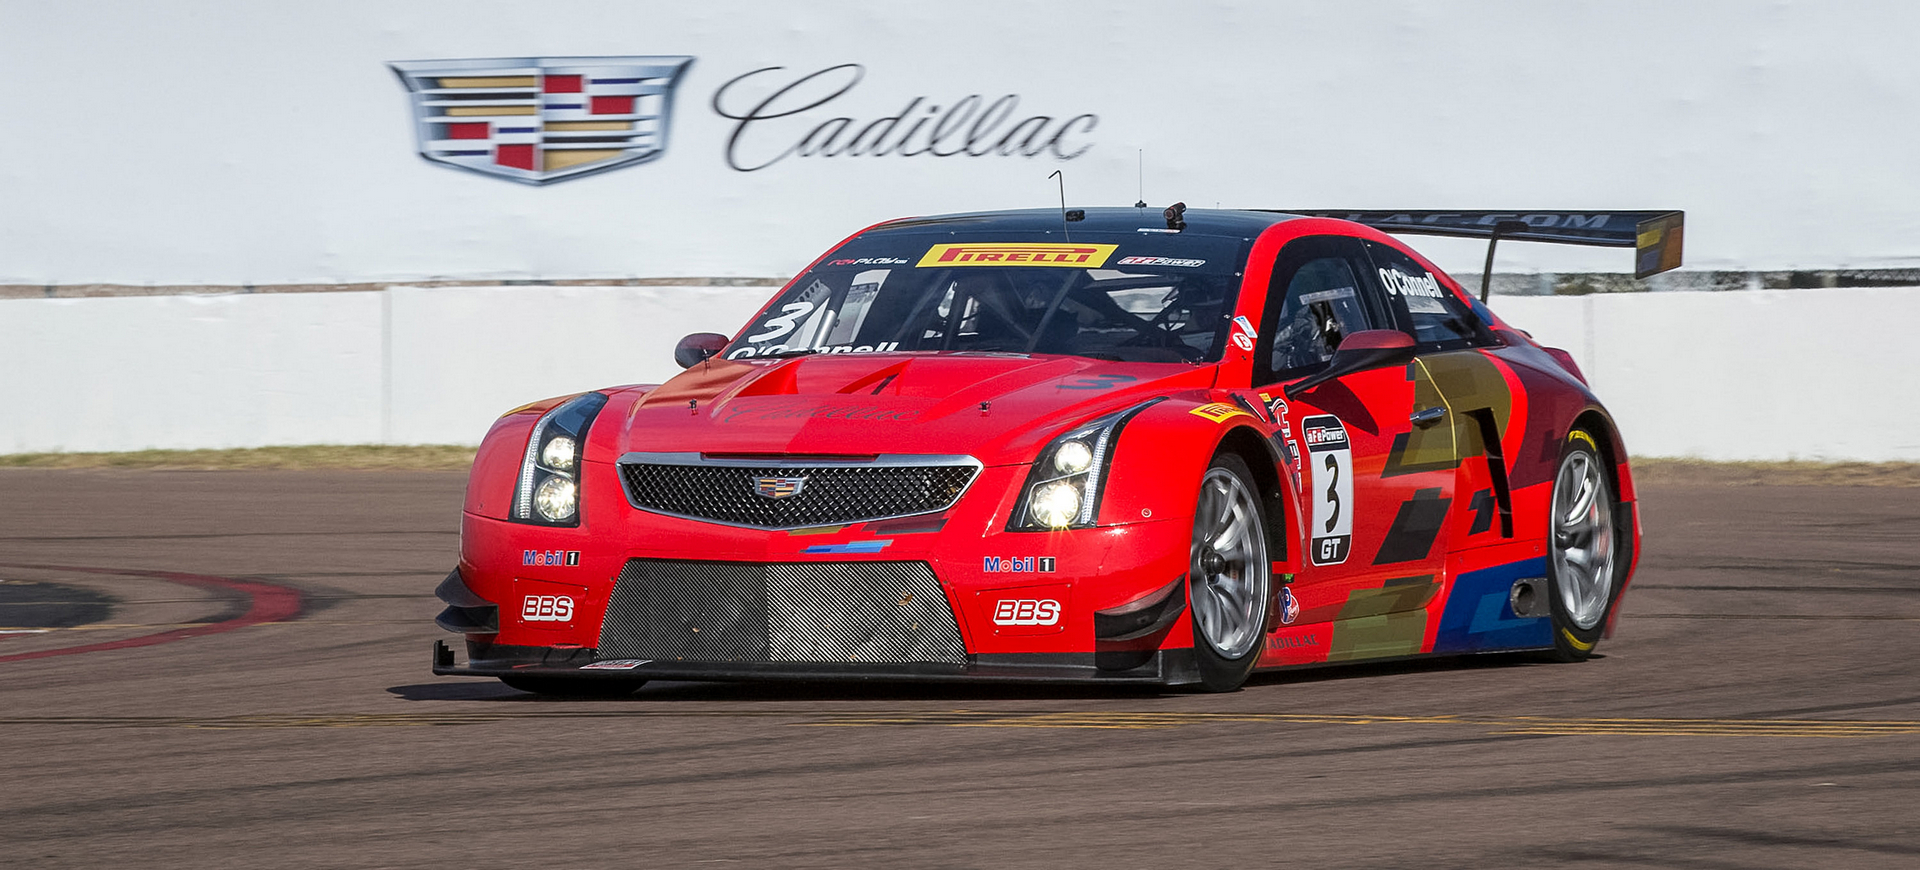 Johnny O'Connell, driver of the #3 Cadillac ATS-V.R qualifies third-fastest Friday, March 11, 2016 for the first of two weekend Pirelli World Challenge GT Series Championship Cadillac Grand Prix races through the streets of St. Petersburg in St. Petersburg, Florida. O'Connell will start the race from the second row. (Photo by Richard Prince for Cadillac Racing)